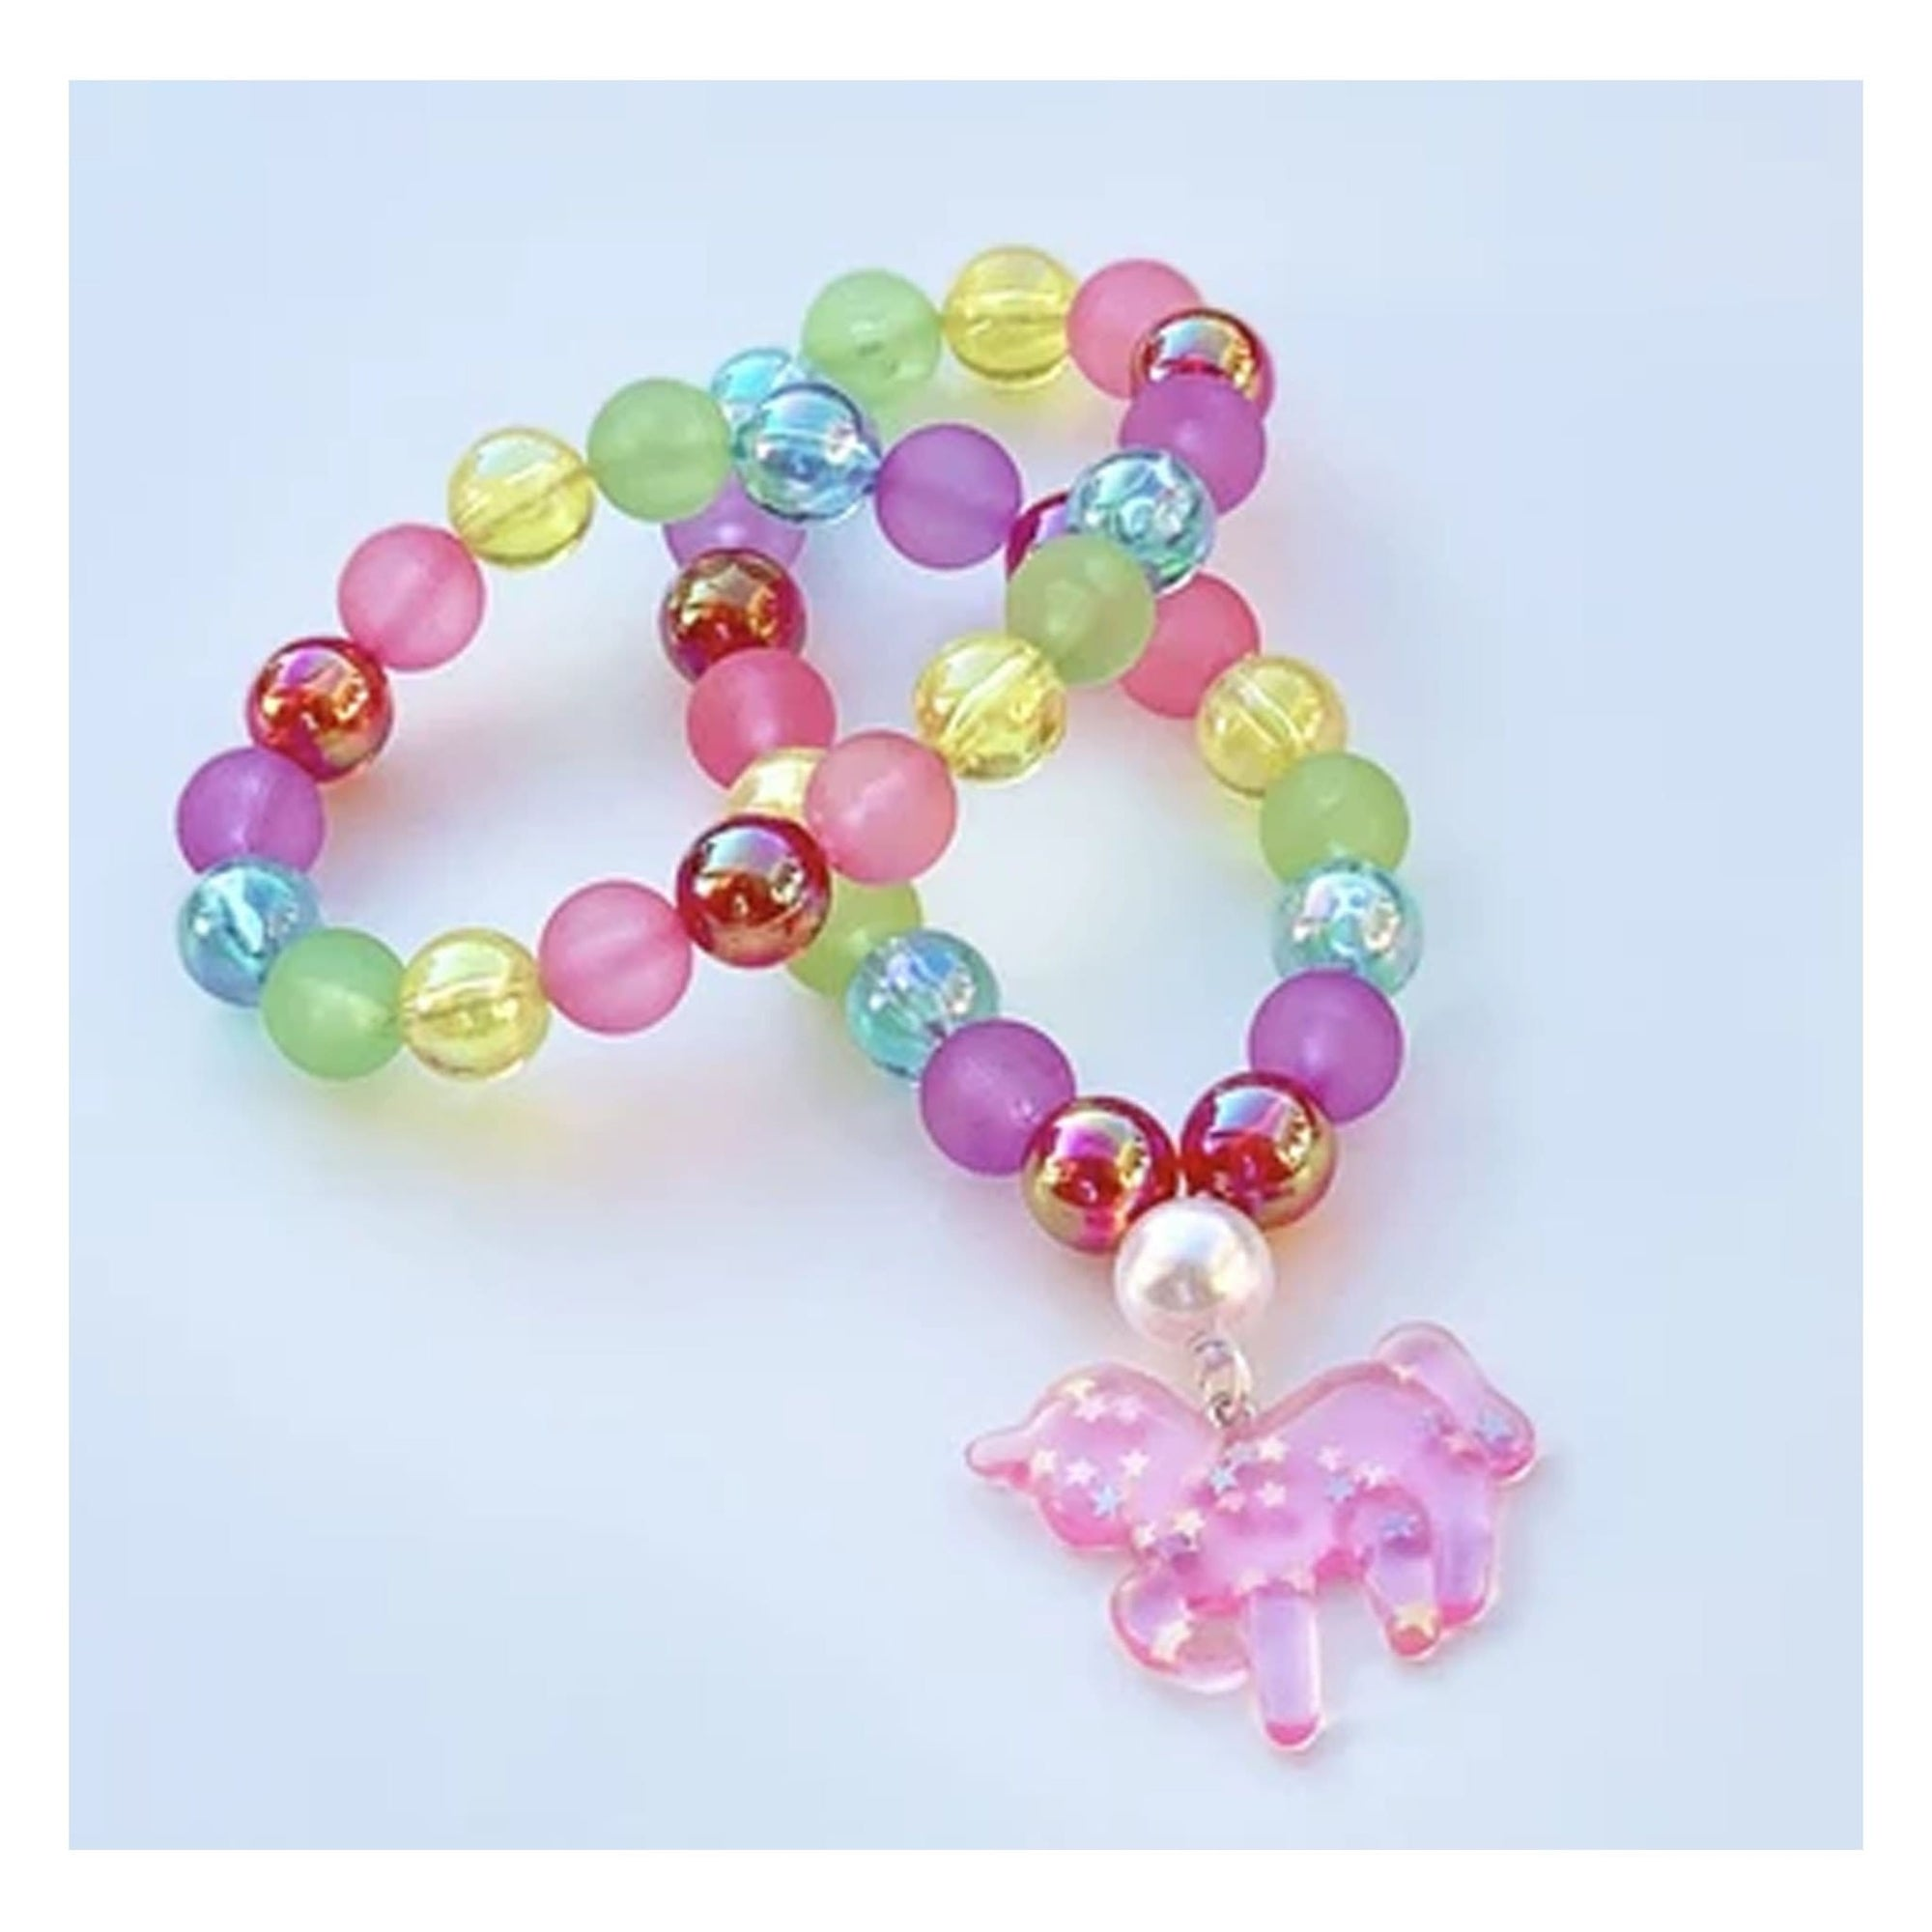 Sweet as Sugar Jellewery Beaded Rainbow Unicorn Necklace